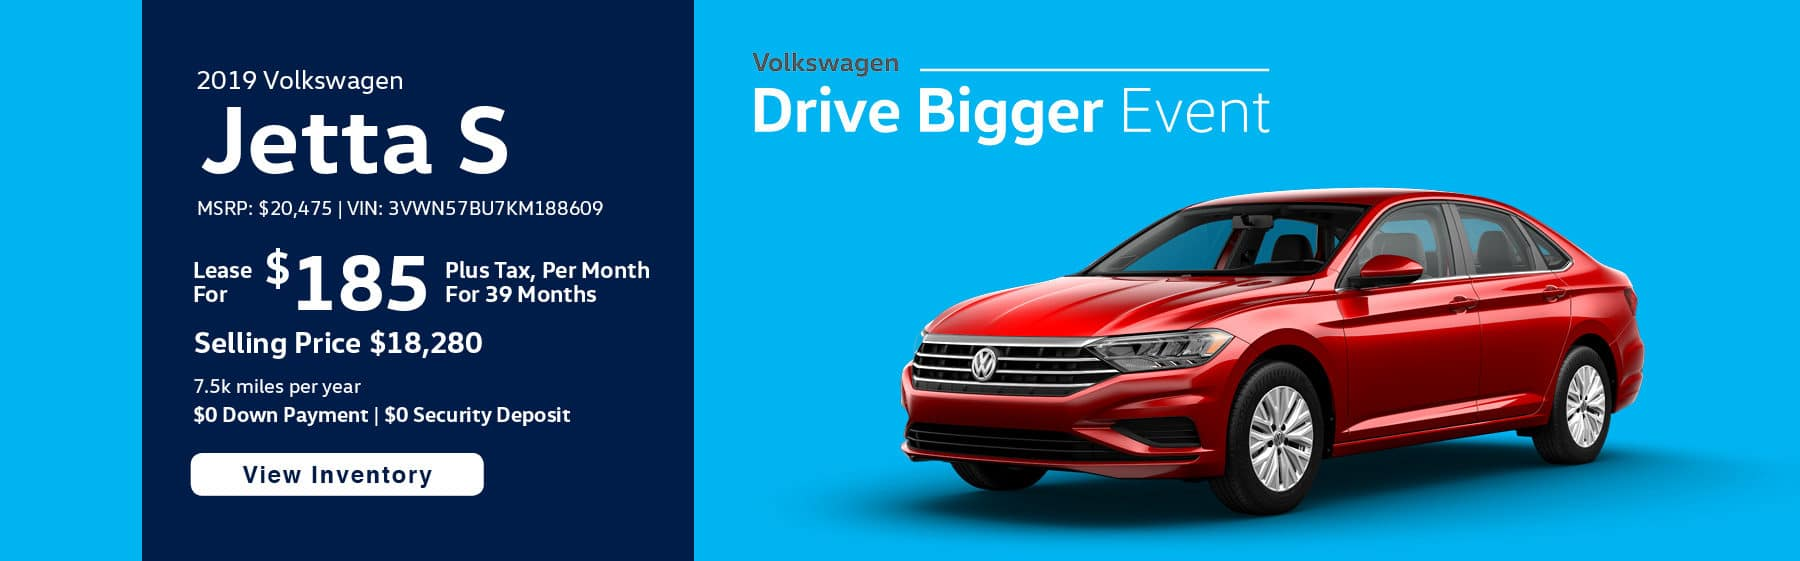 Lease the 2019 Jetta S for $185 per month, plus tax for 39 months.